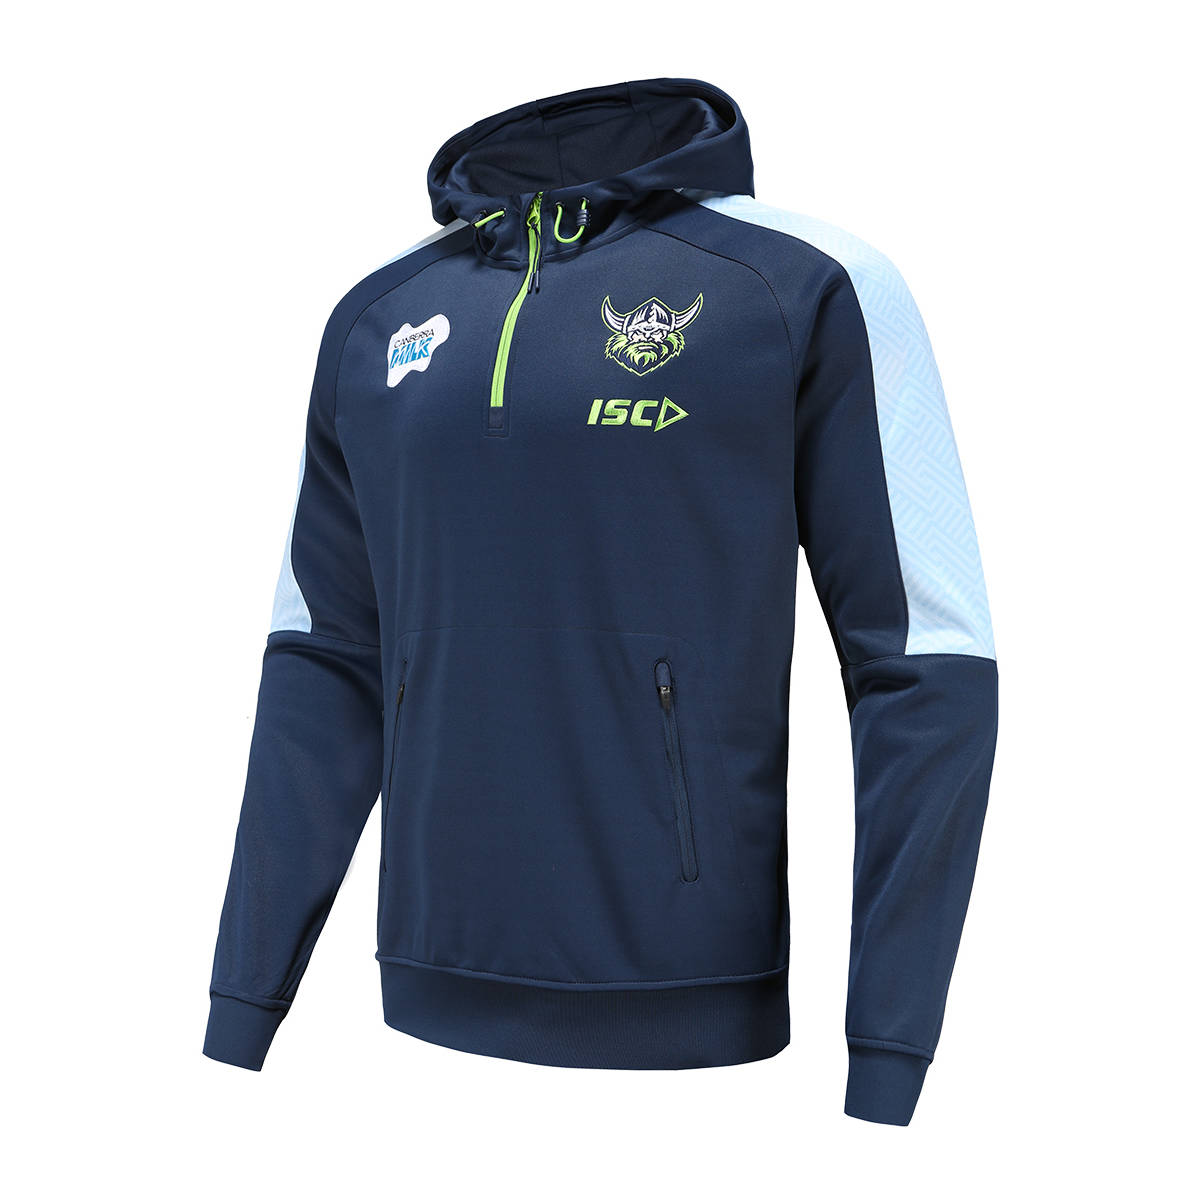 2021 Adults Squad Hoody1